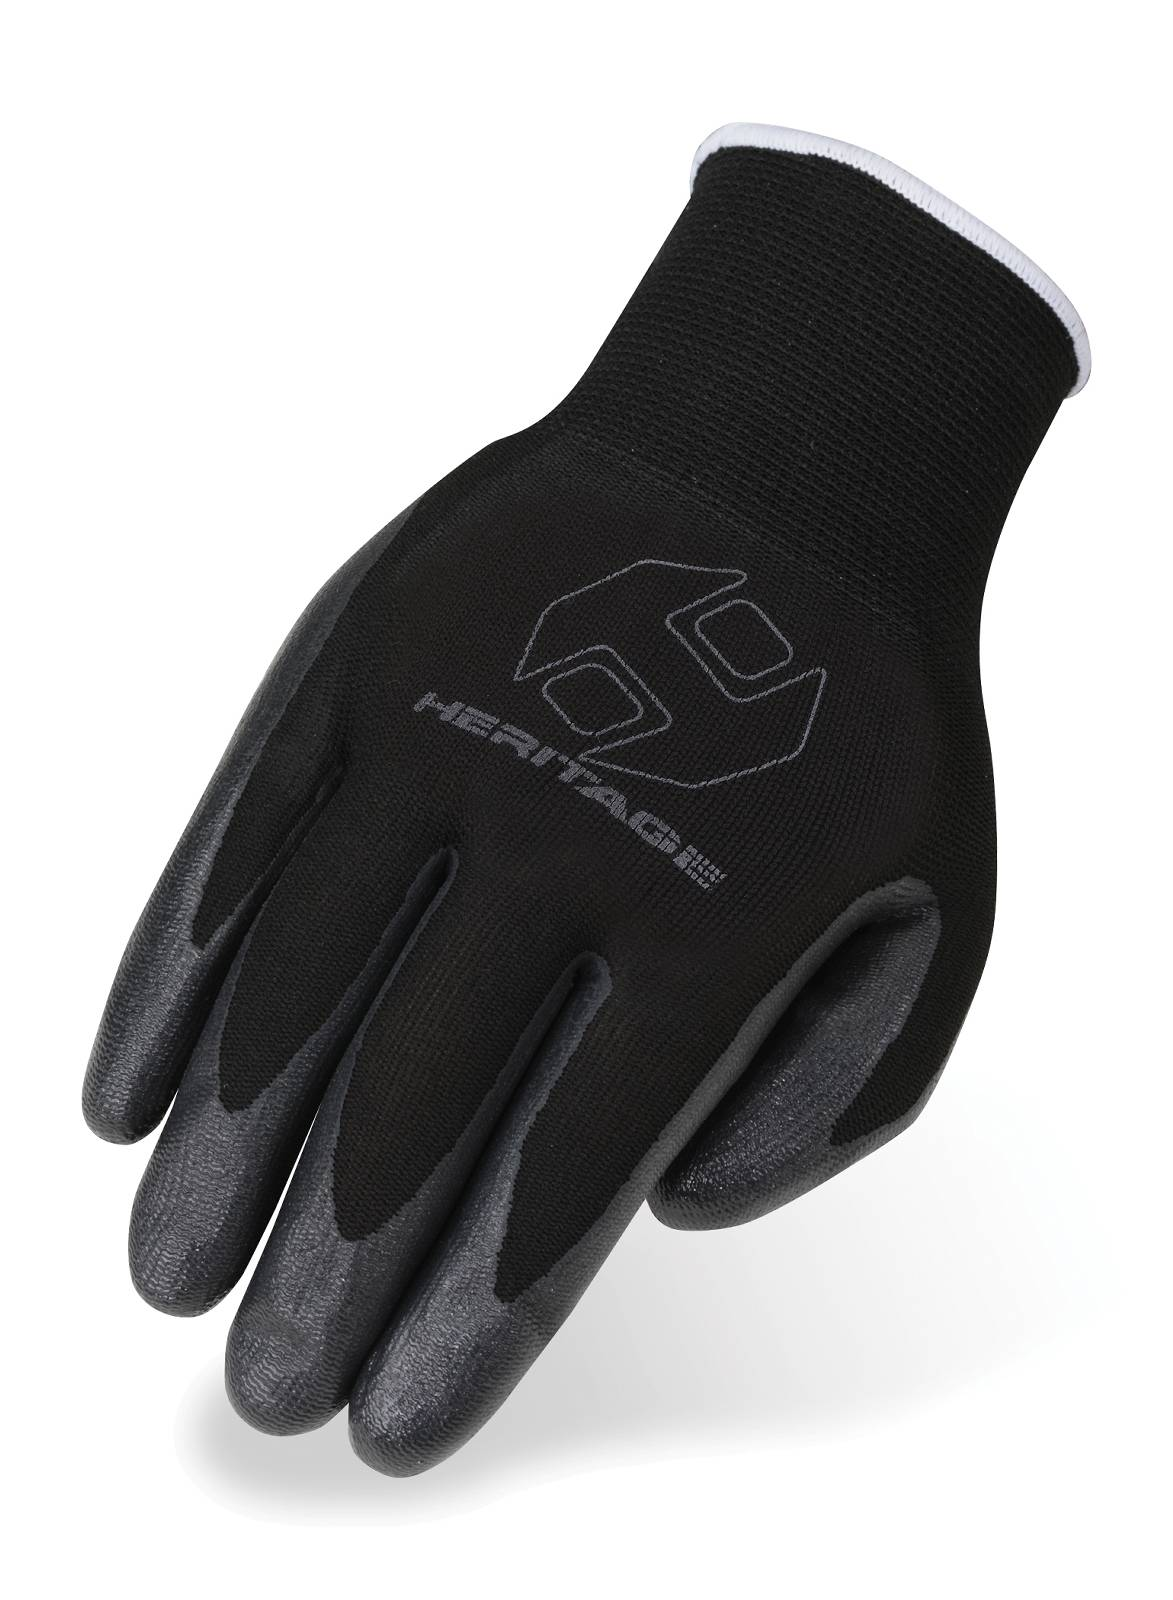 Heritage Gloves Utility Work Gloves (3 Pack)